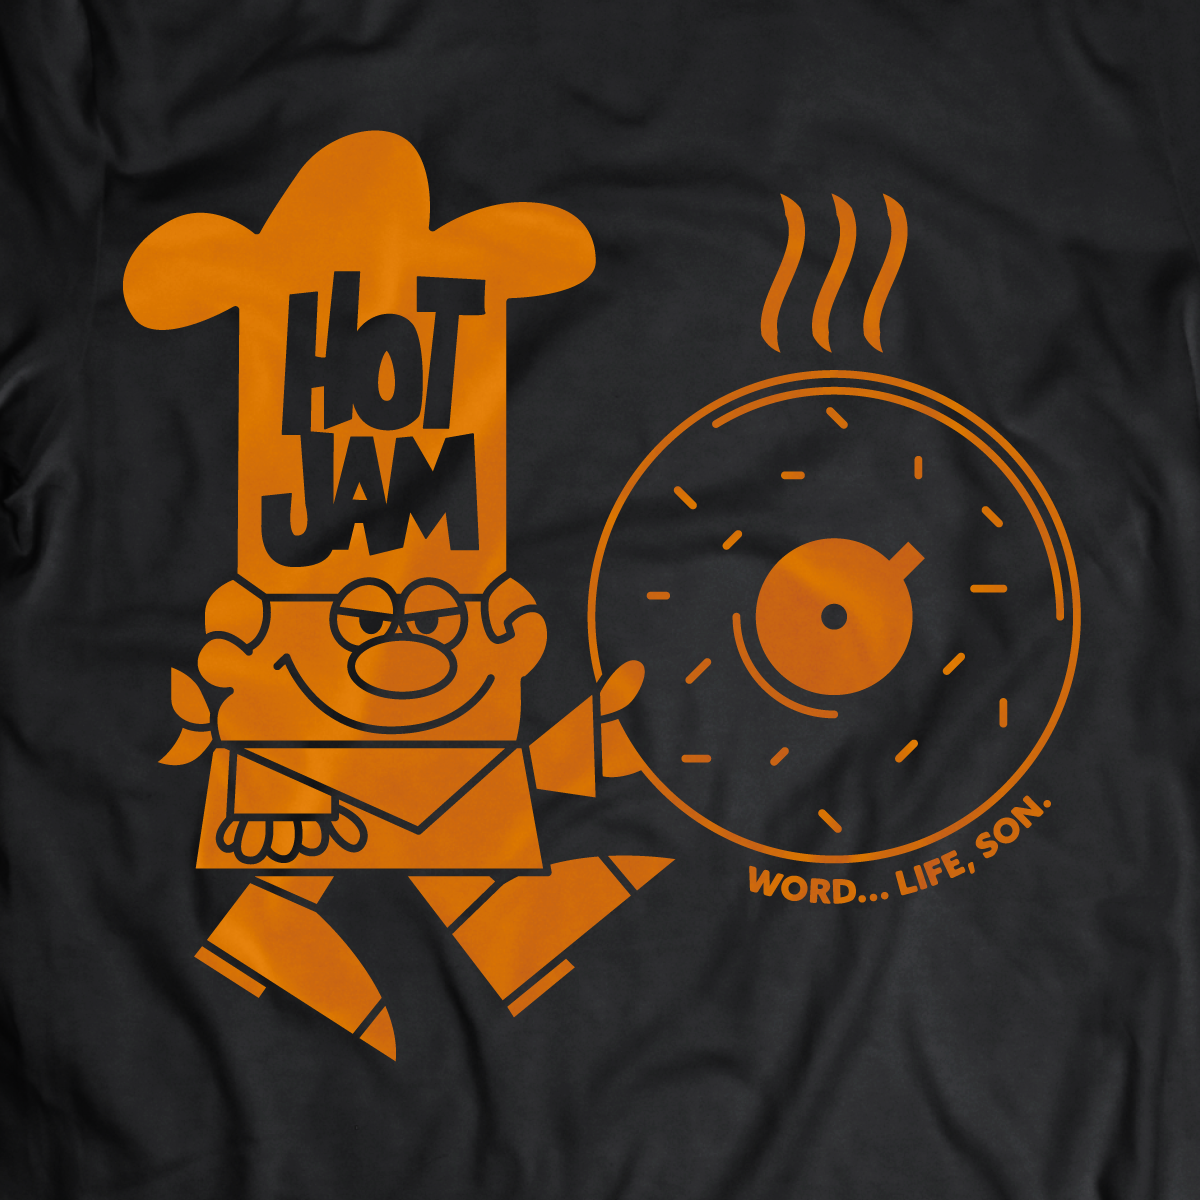 Hot Jam Throwback Black Throwback, Tshirt logo, Retro